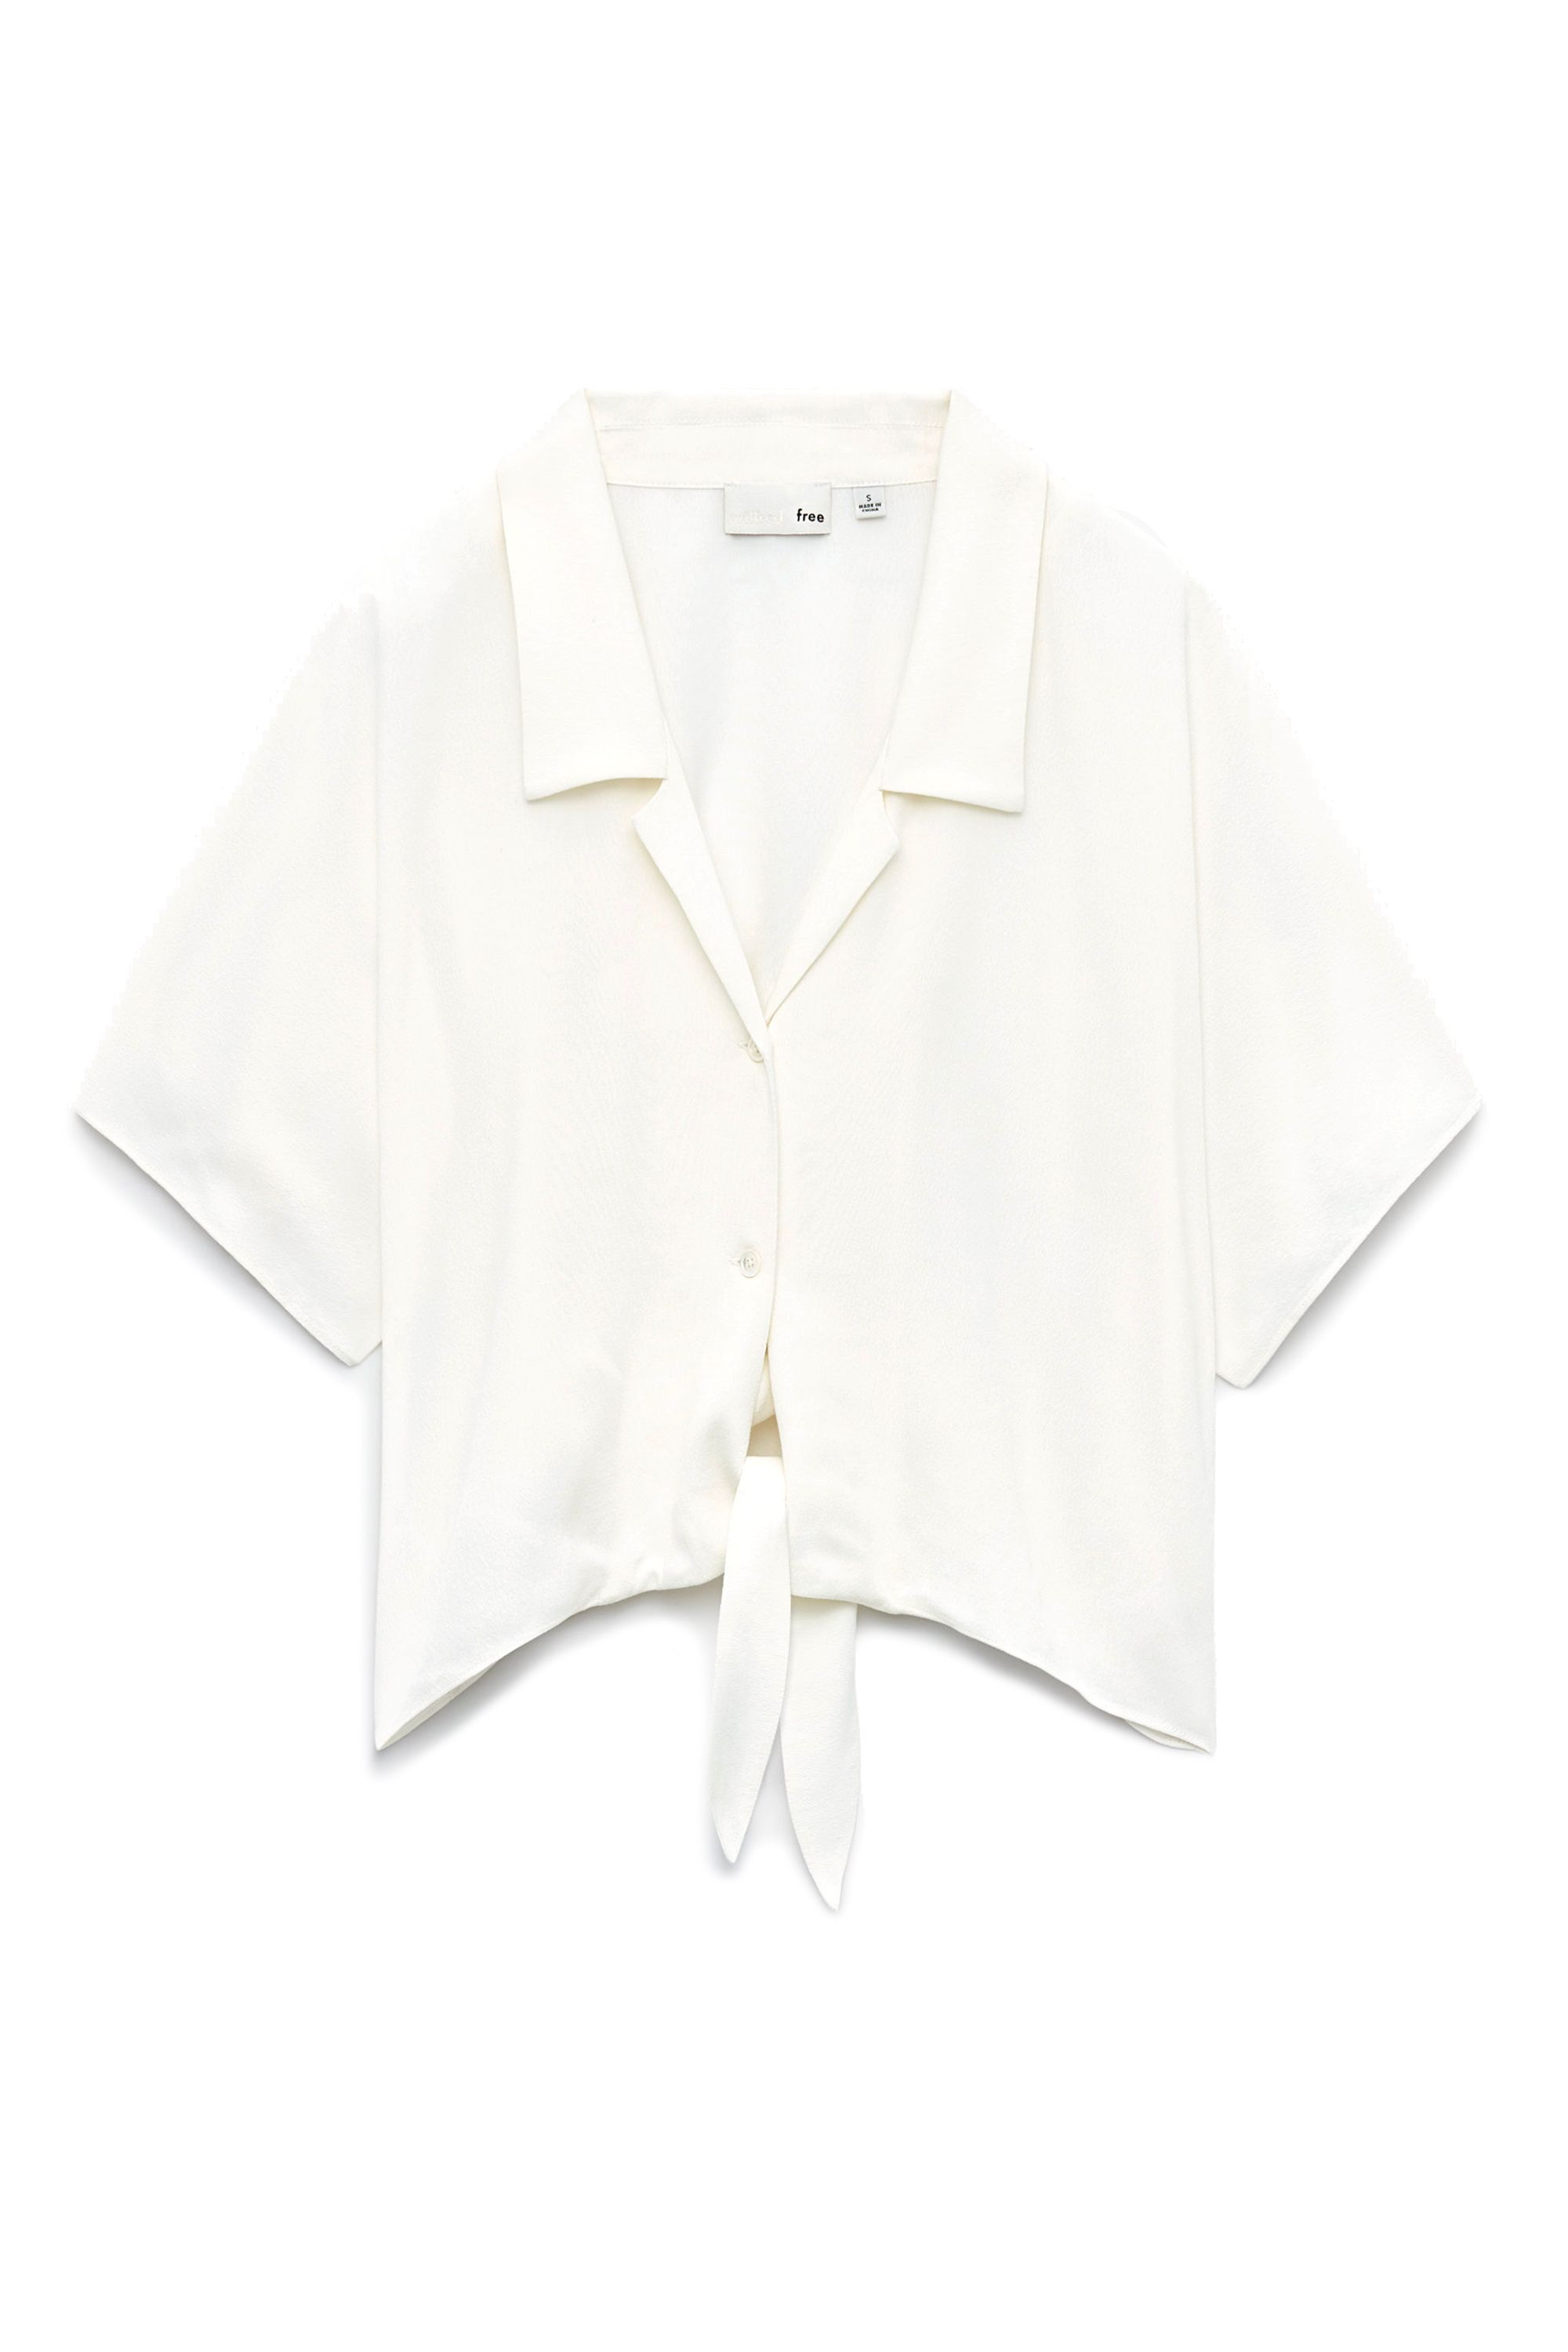 "<p> Wilfred Huang Blouse, $65; <a href=""http://www.aritzia.com/en/product/huang-blouse/63074.html?dwvar_63074_color=6824"">aritzia.com</a></p><p><span class=""redactor-invisible-space"" data-verified=""redactor"" data-redactor-tag=""span"" data-redactor-class=""redactor-invisible-space""></span></p>"